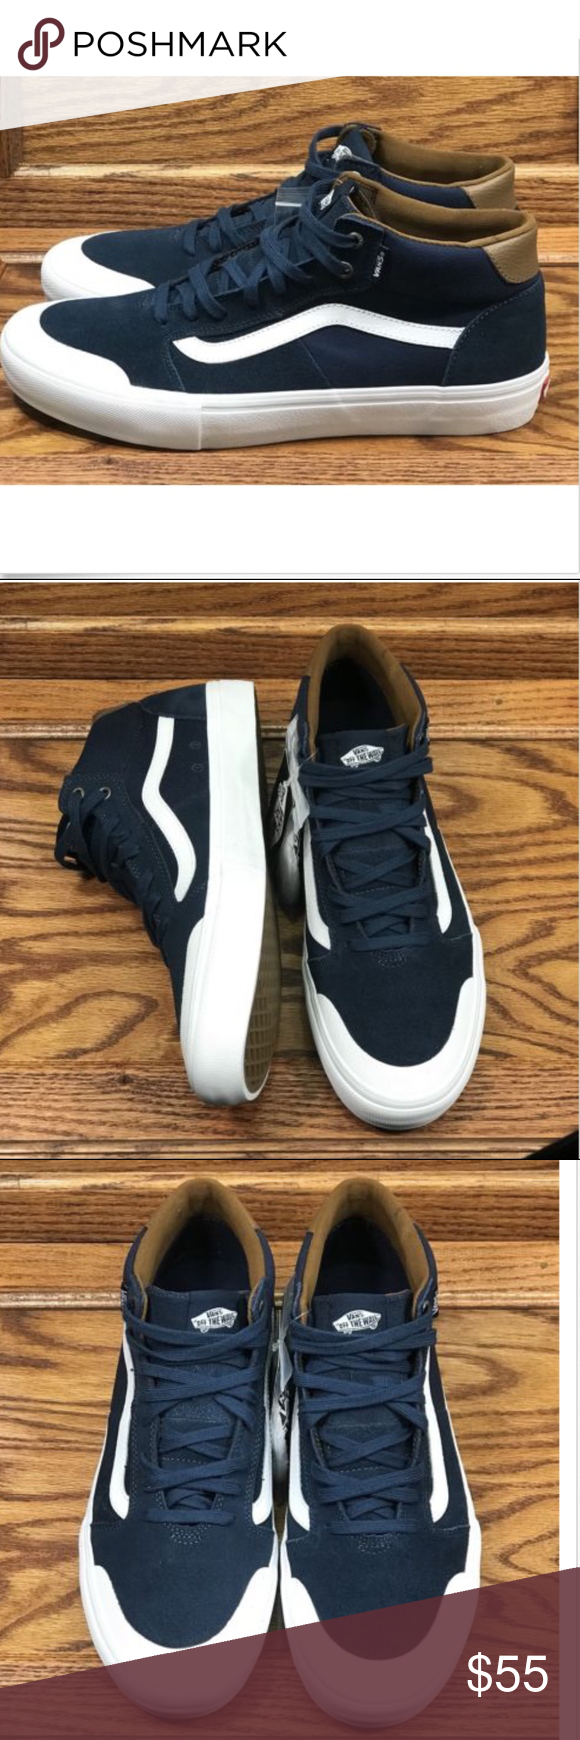 0ceaefd2f8d666 Vans Style 112 Mid Pro Navy White Canvas Suede Vans Style 112 Mid Pro Navy  White Skate Canvas Suede Shoes Size Men 13 Brand new in box Come with extra  laces ...